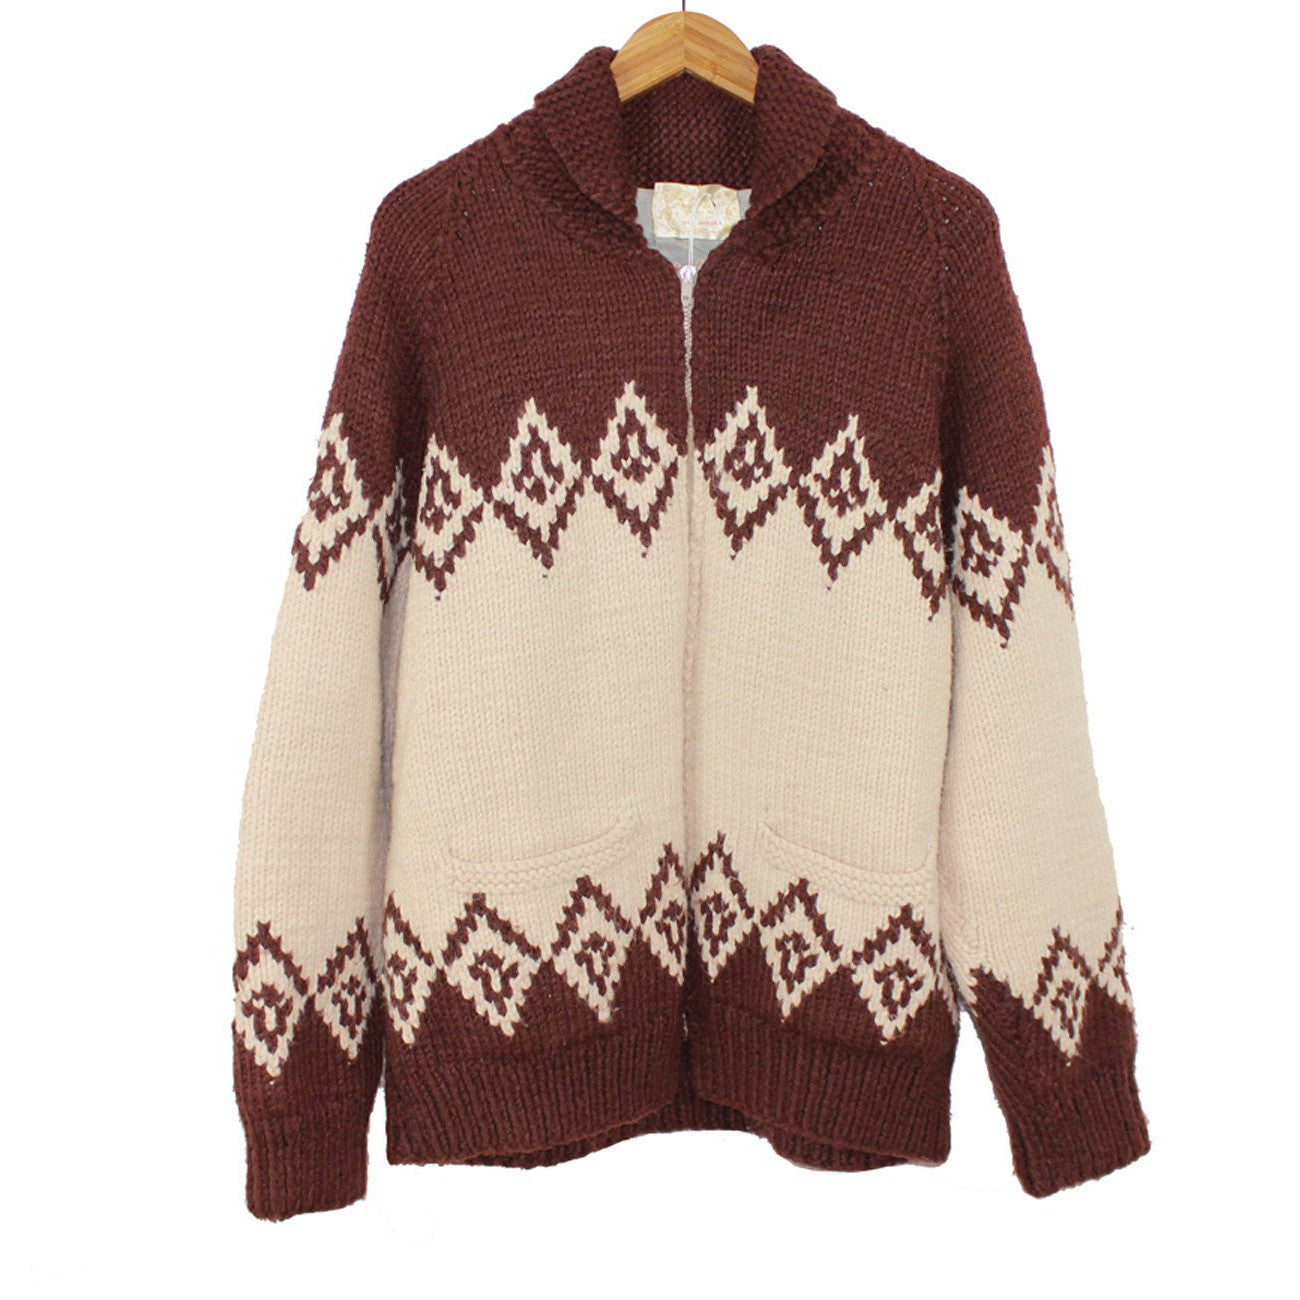 Brown and Cream Hand Knit Cowichan Sweater